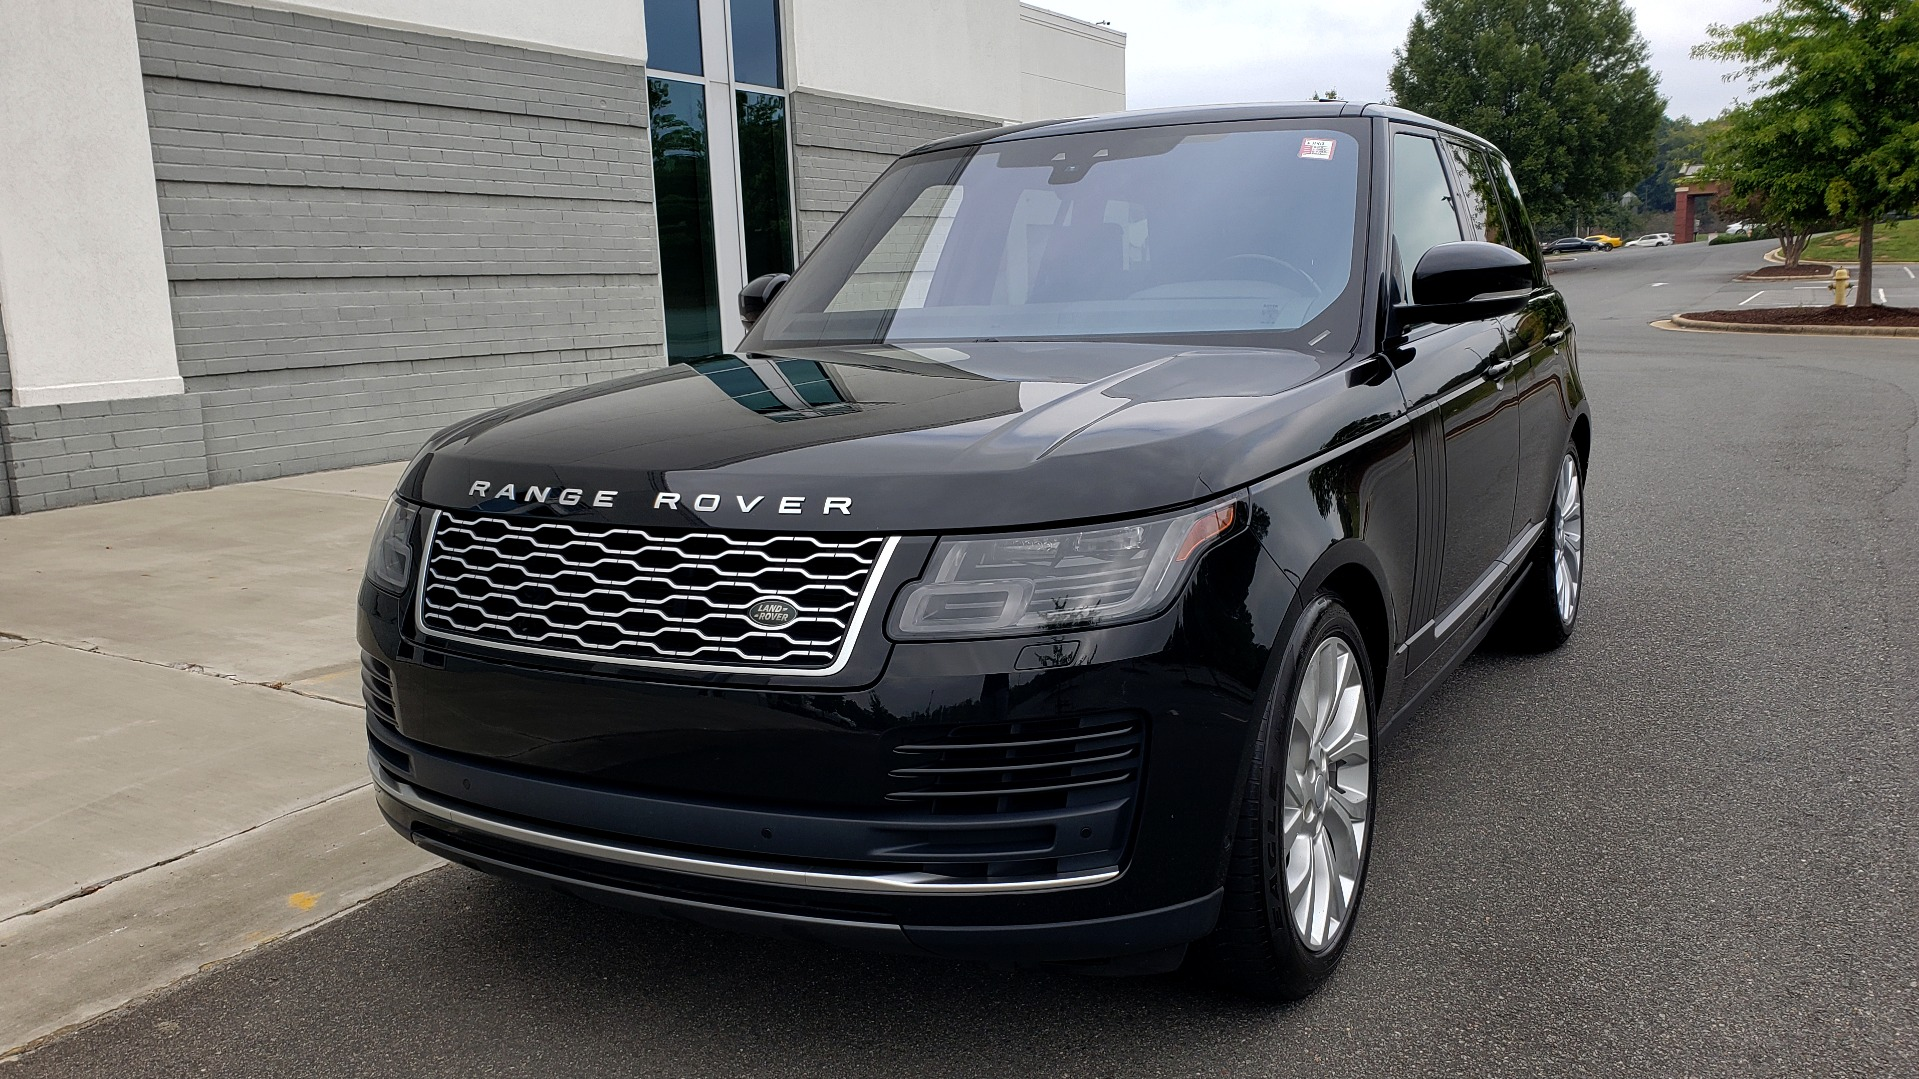 Used 2018 Land Rover RANGE ROVER SUPERCHARGED V8 / DRIVE PRO / NAV / PANO-ROOF / REARVIEW for sale $84,995 at Formula Imports in Charlotte NC 28227 4